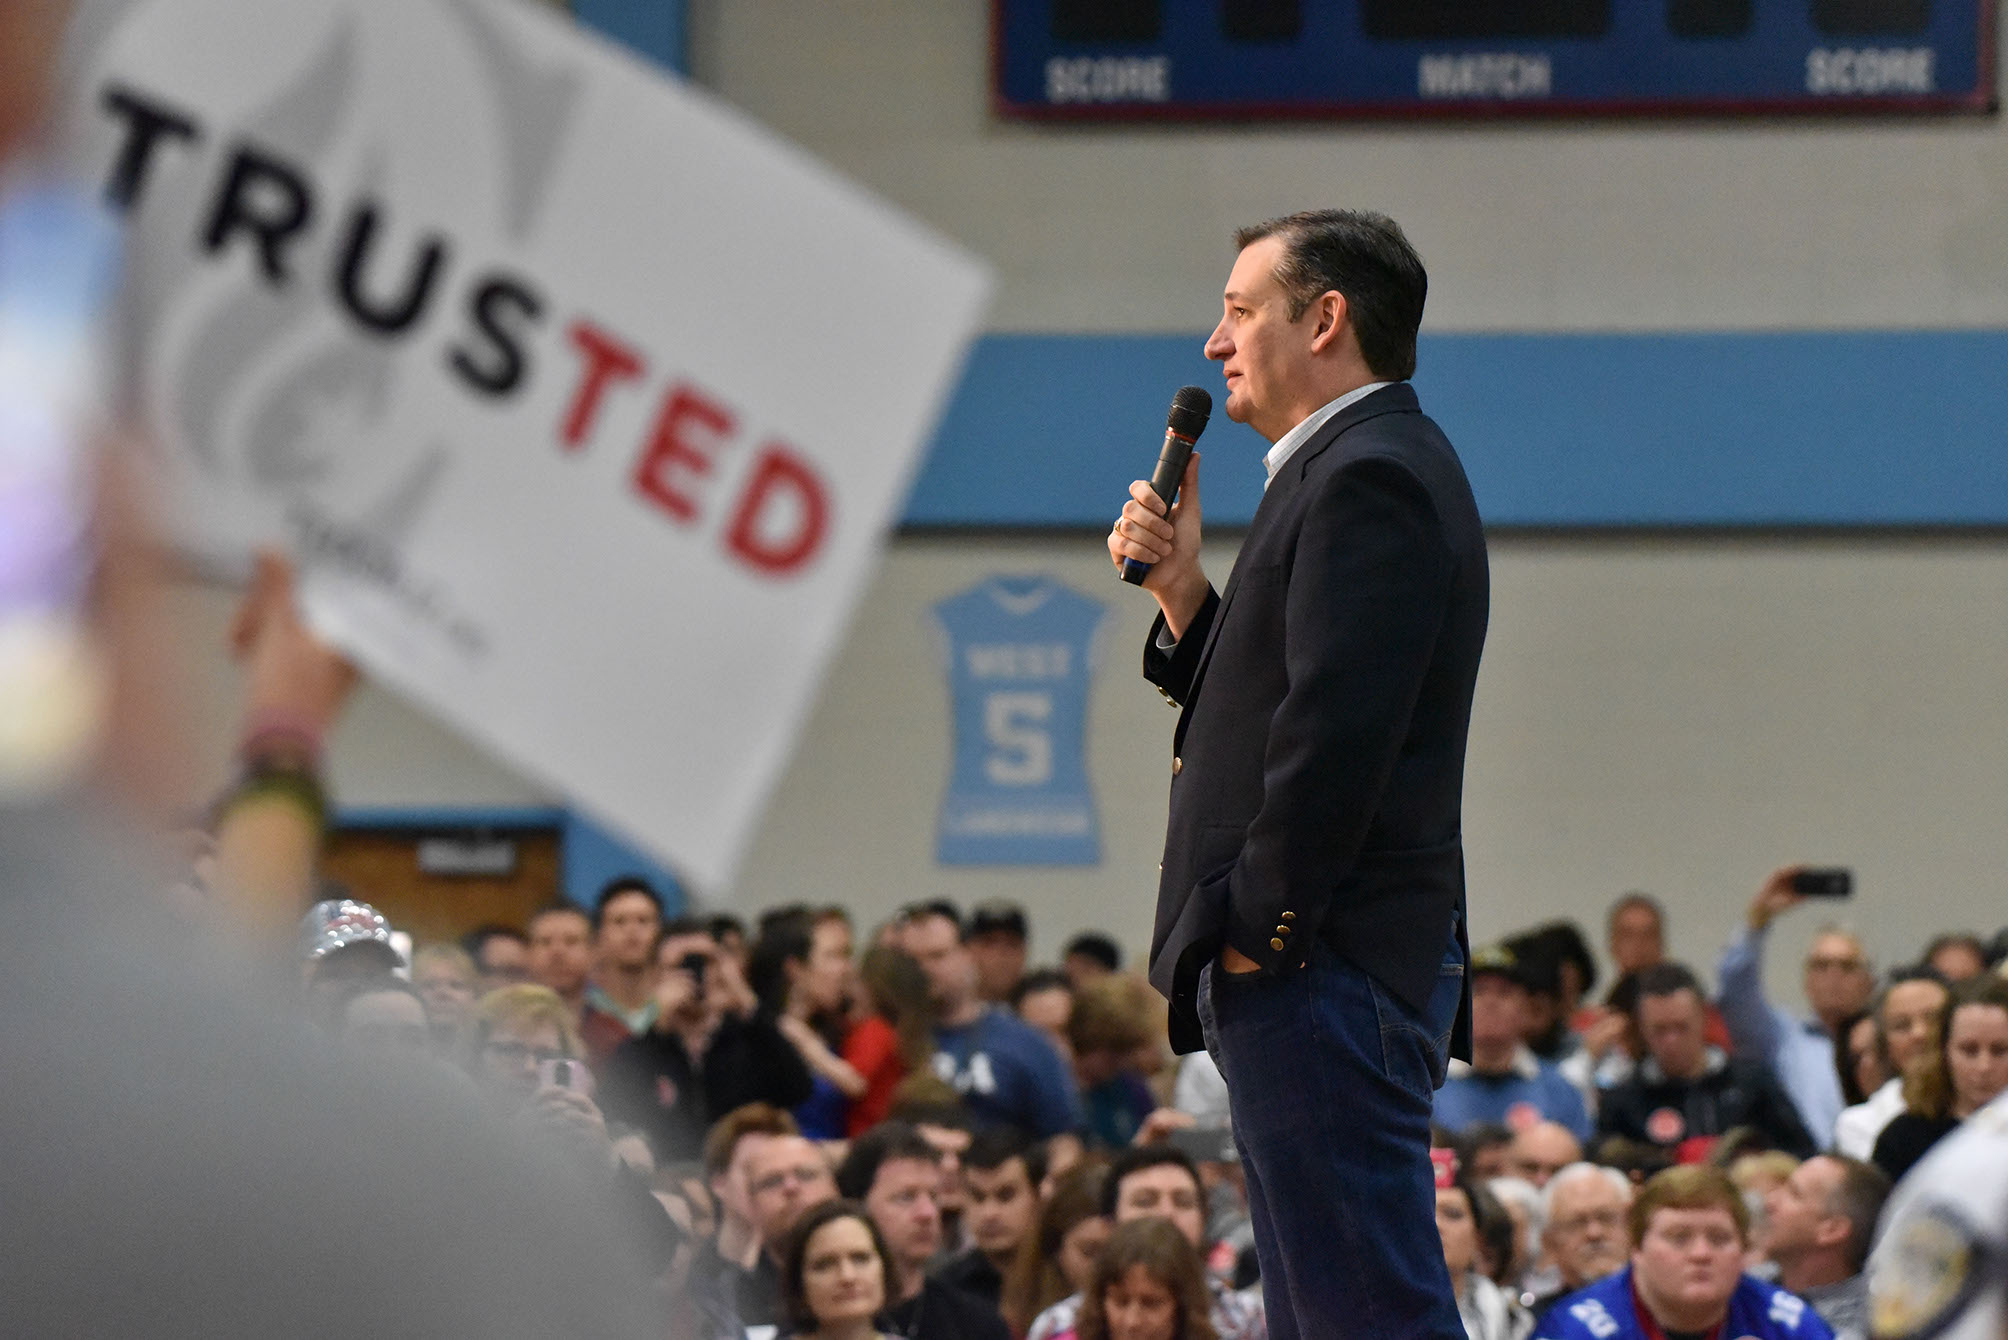 Ted Cruz Announces That He Will Vote For Donald Trump